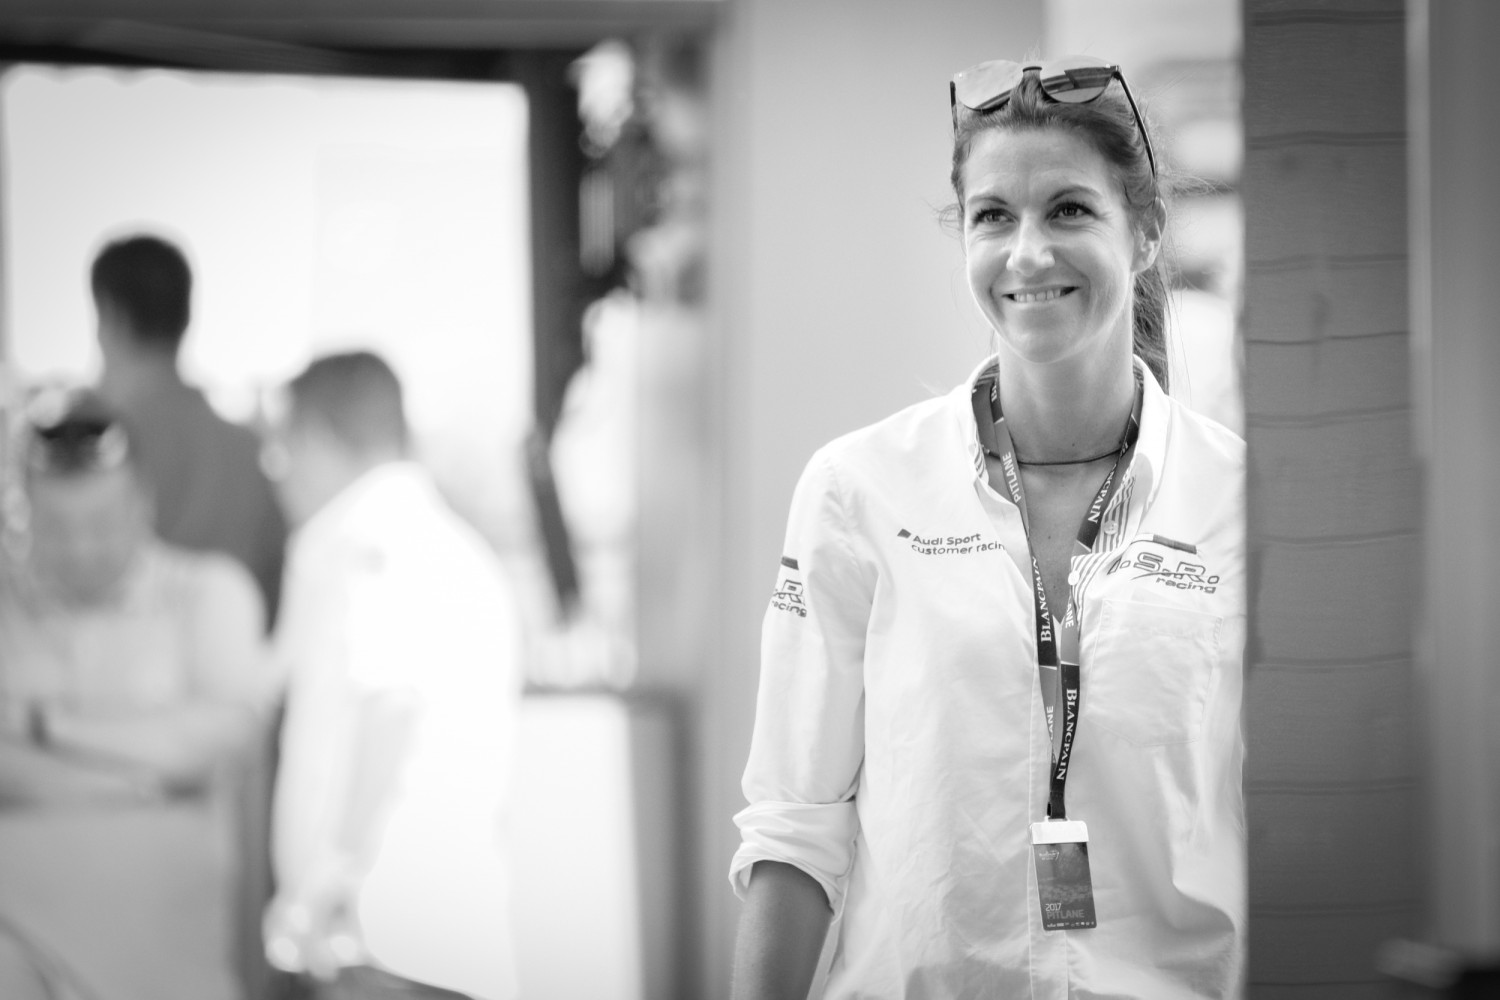 Is it a man's world? - Lucie Horova, Team Manager I.S.R. Racing